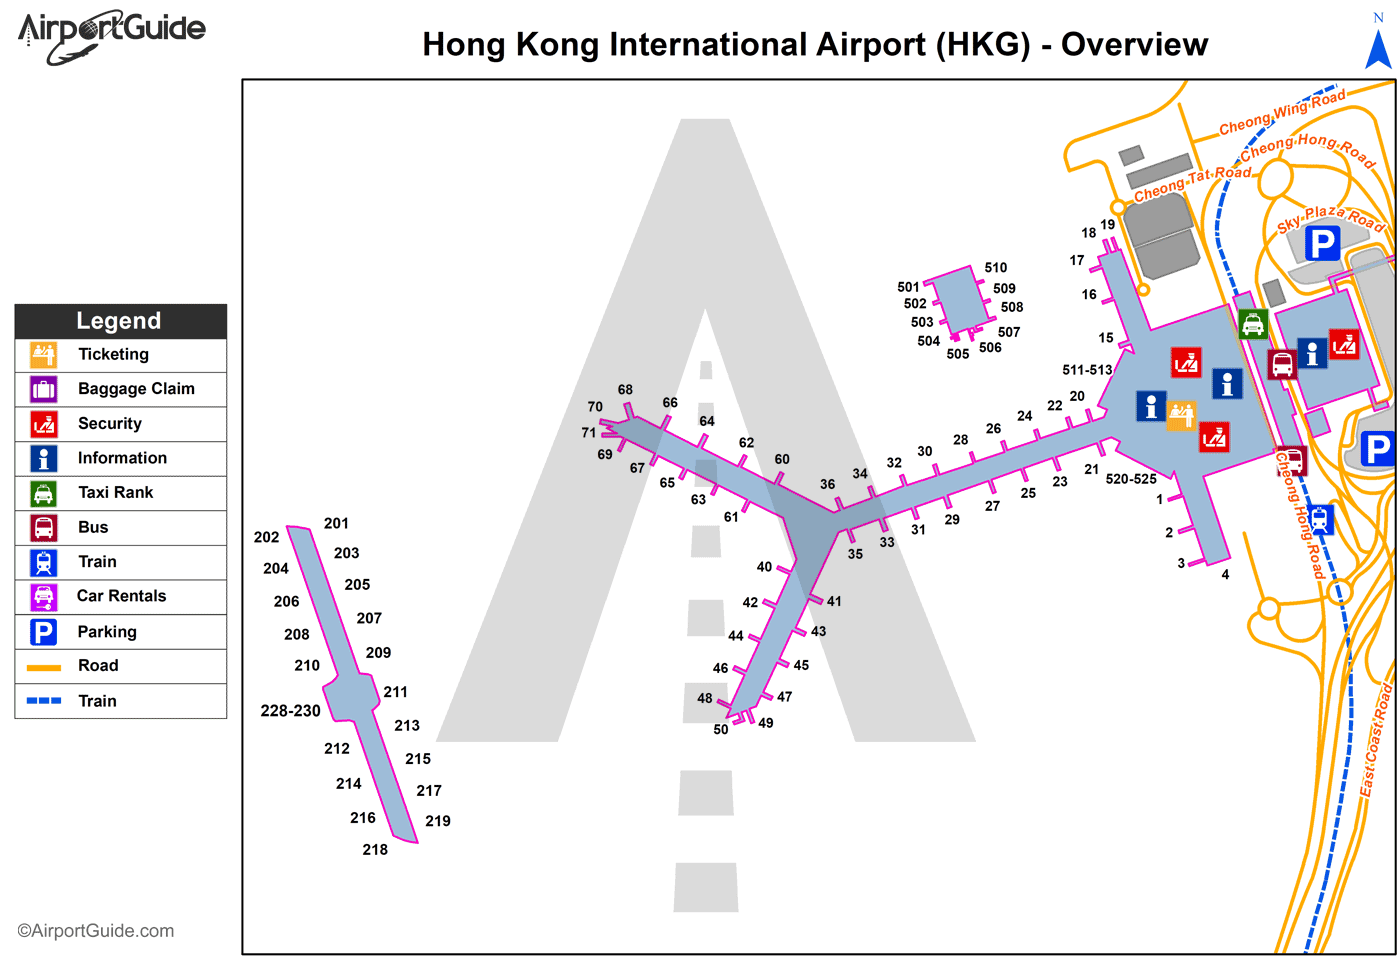 Hong Kong - Hong Kong International (HKG) Airport Terminal Map - Overview